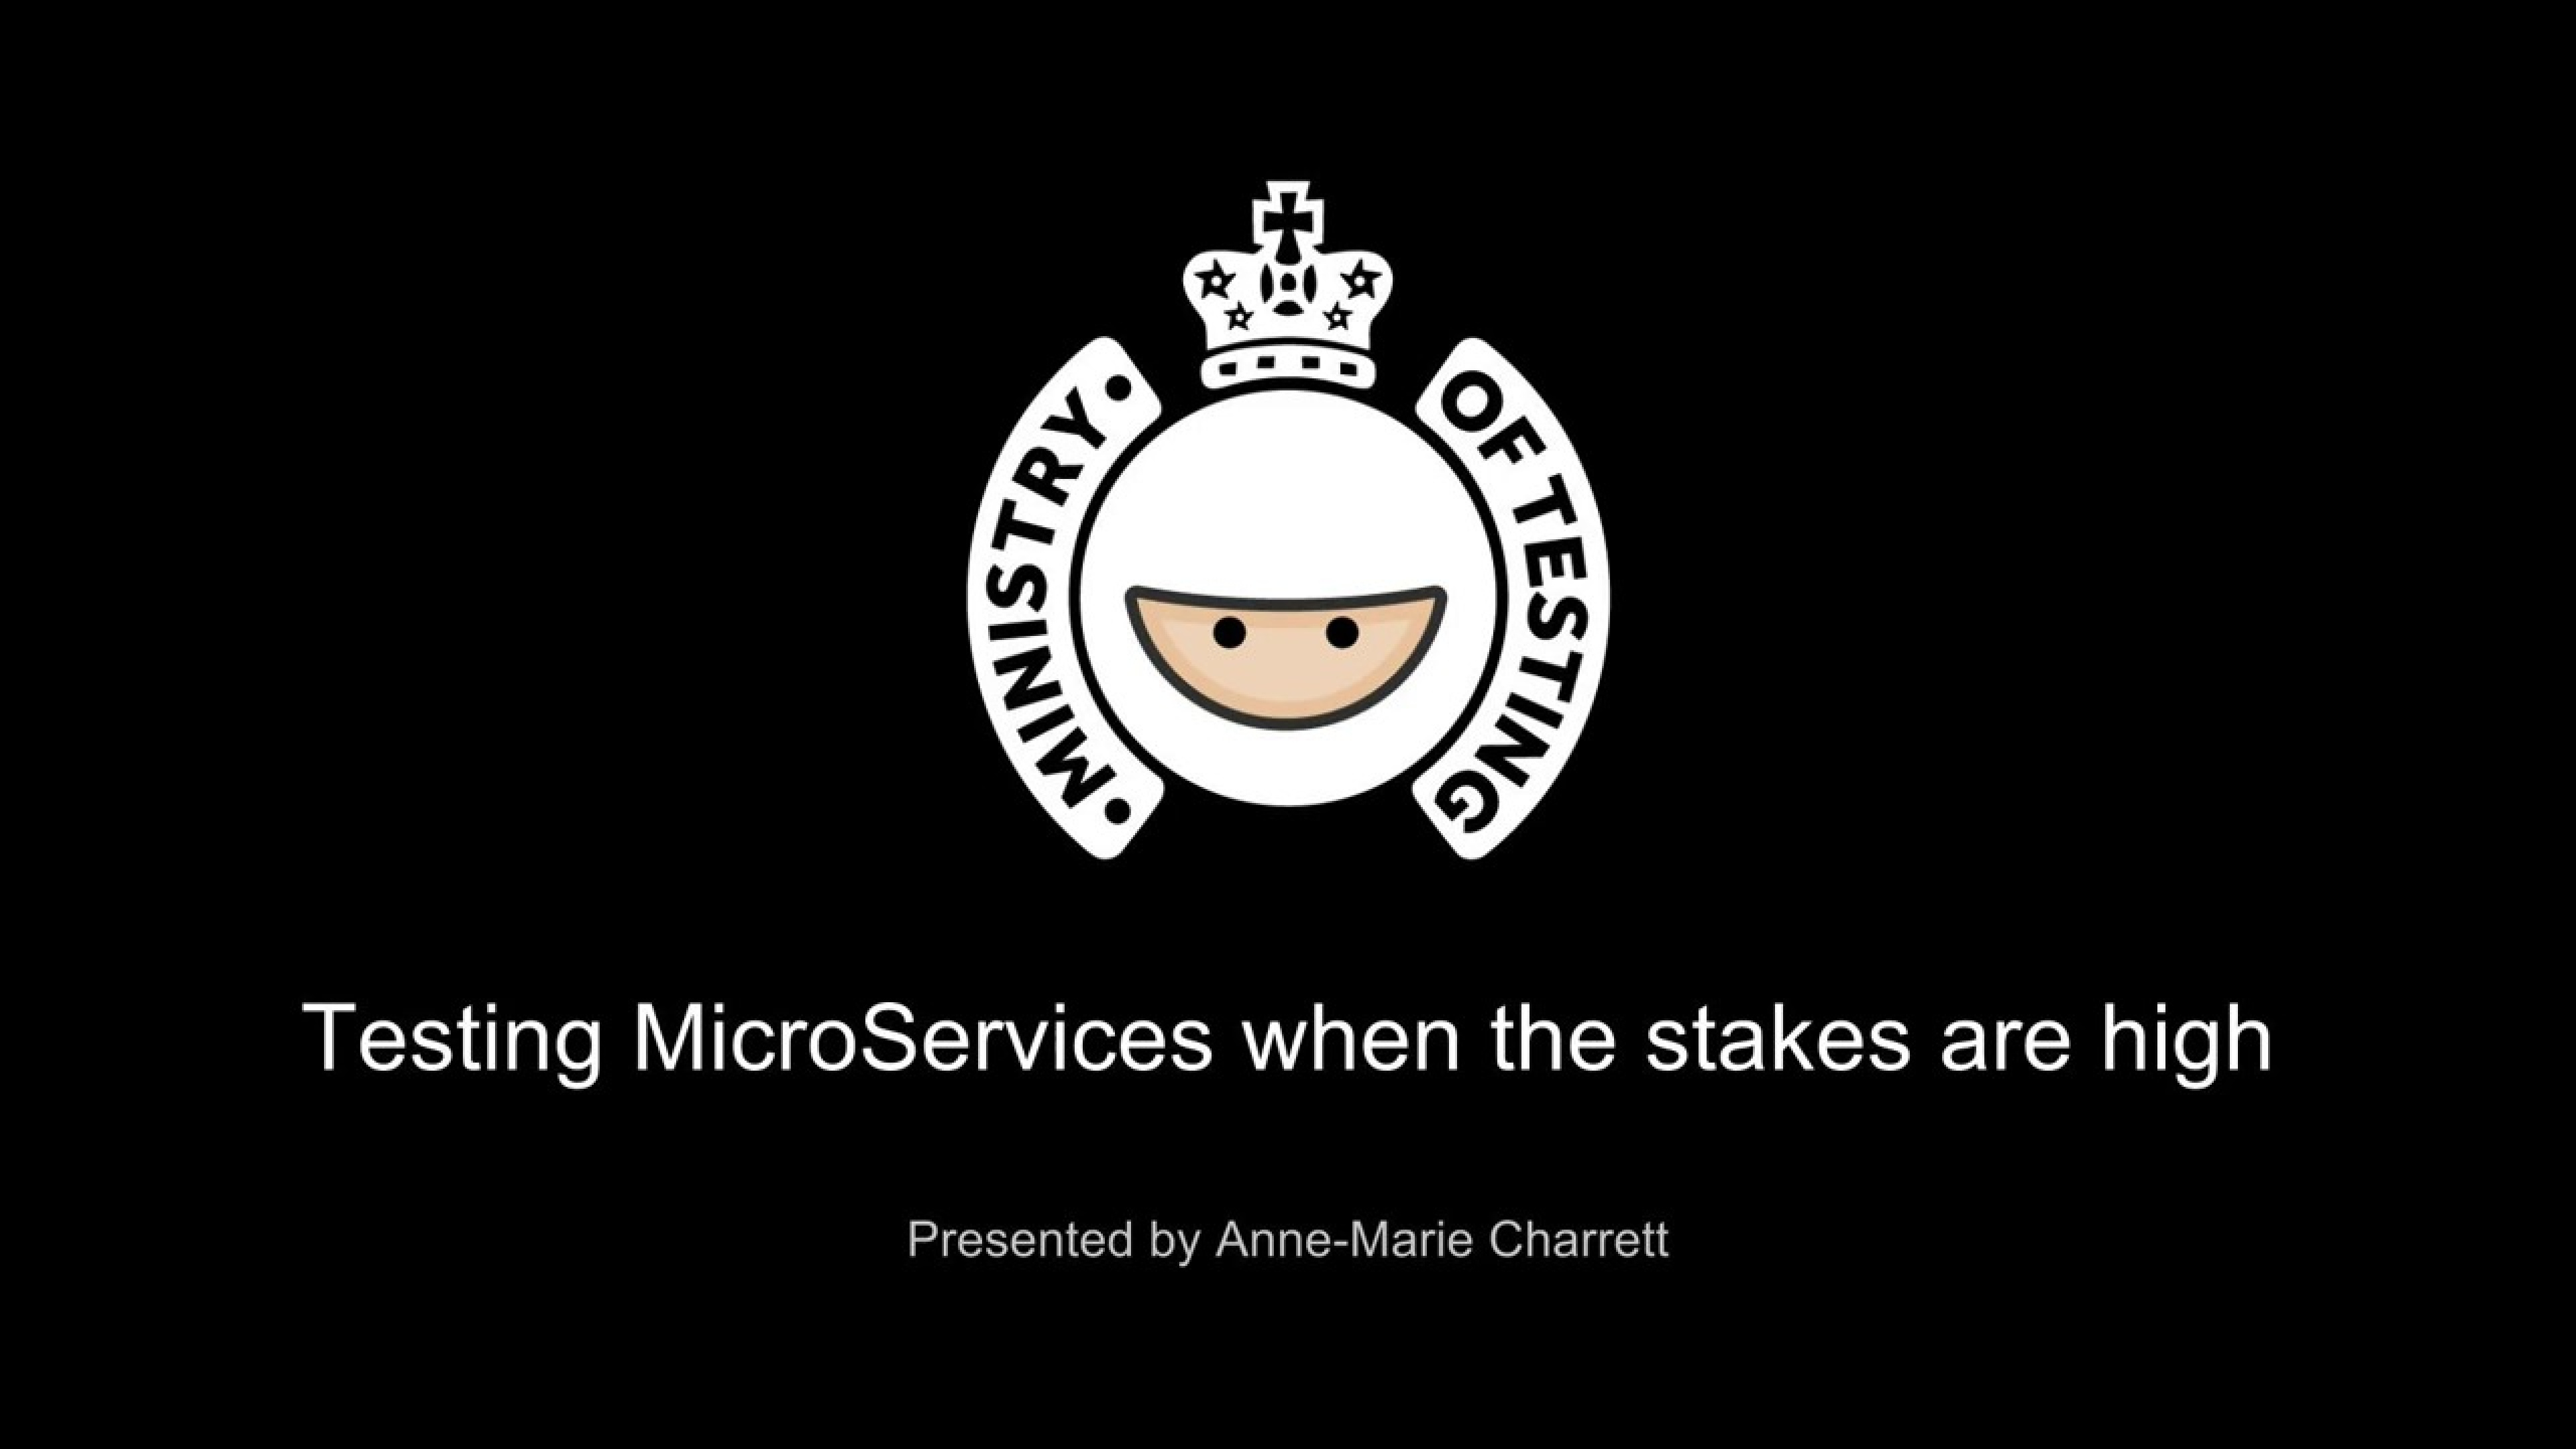 Testing Microservices when the stakes are high with Anne-Marie Charrett